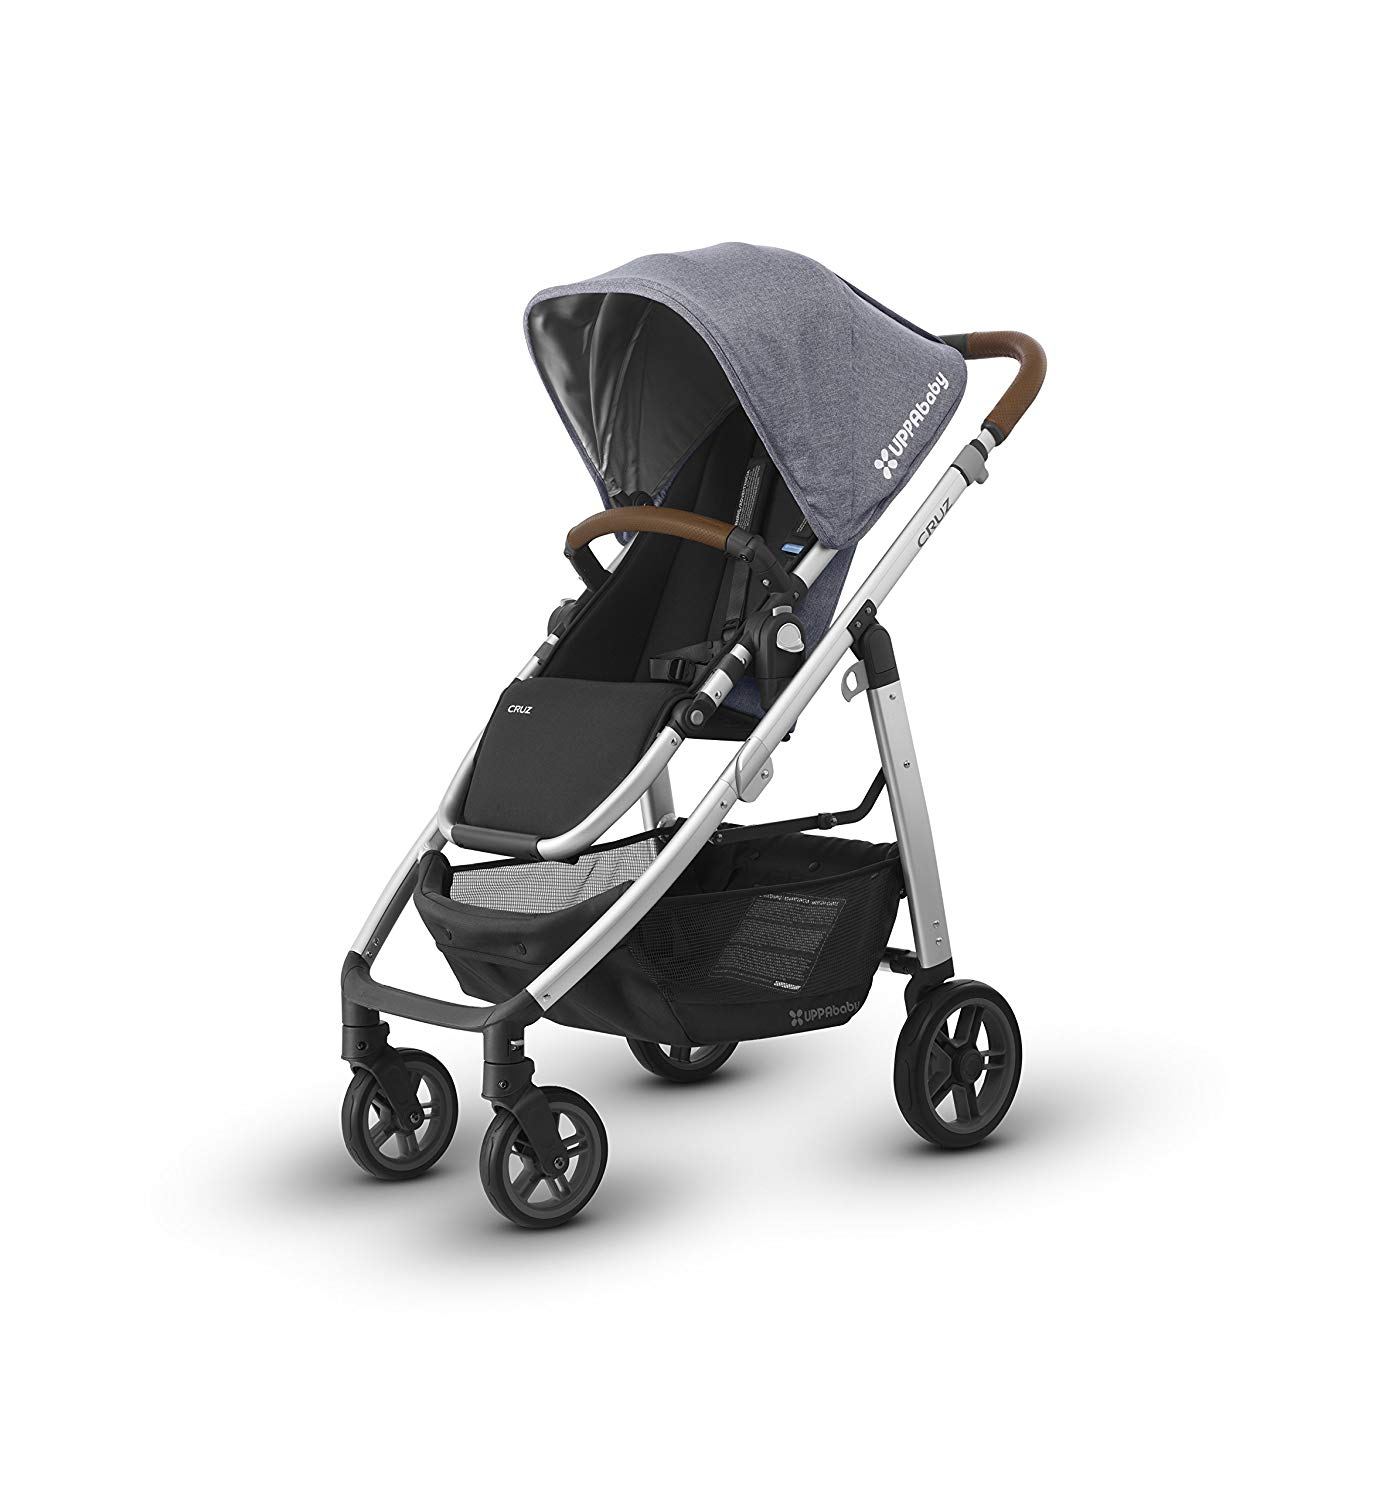 The UPPAbaby Cruz features an impeccable design and useful storage solutions.